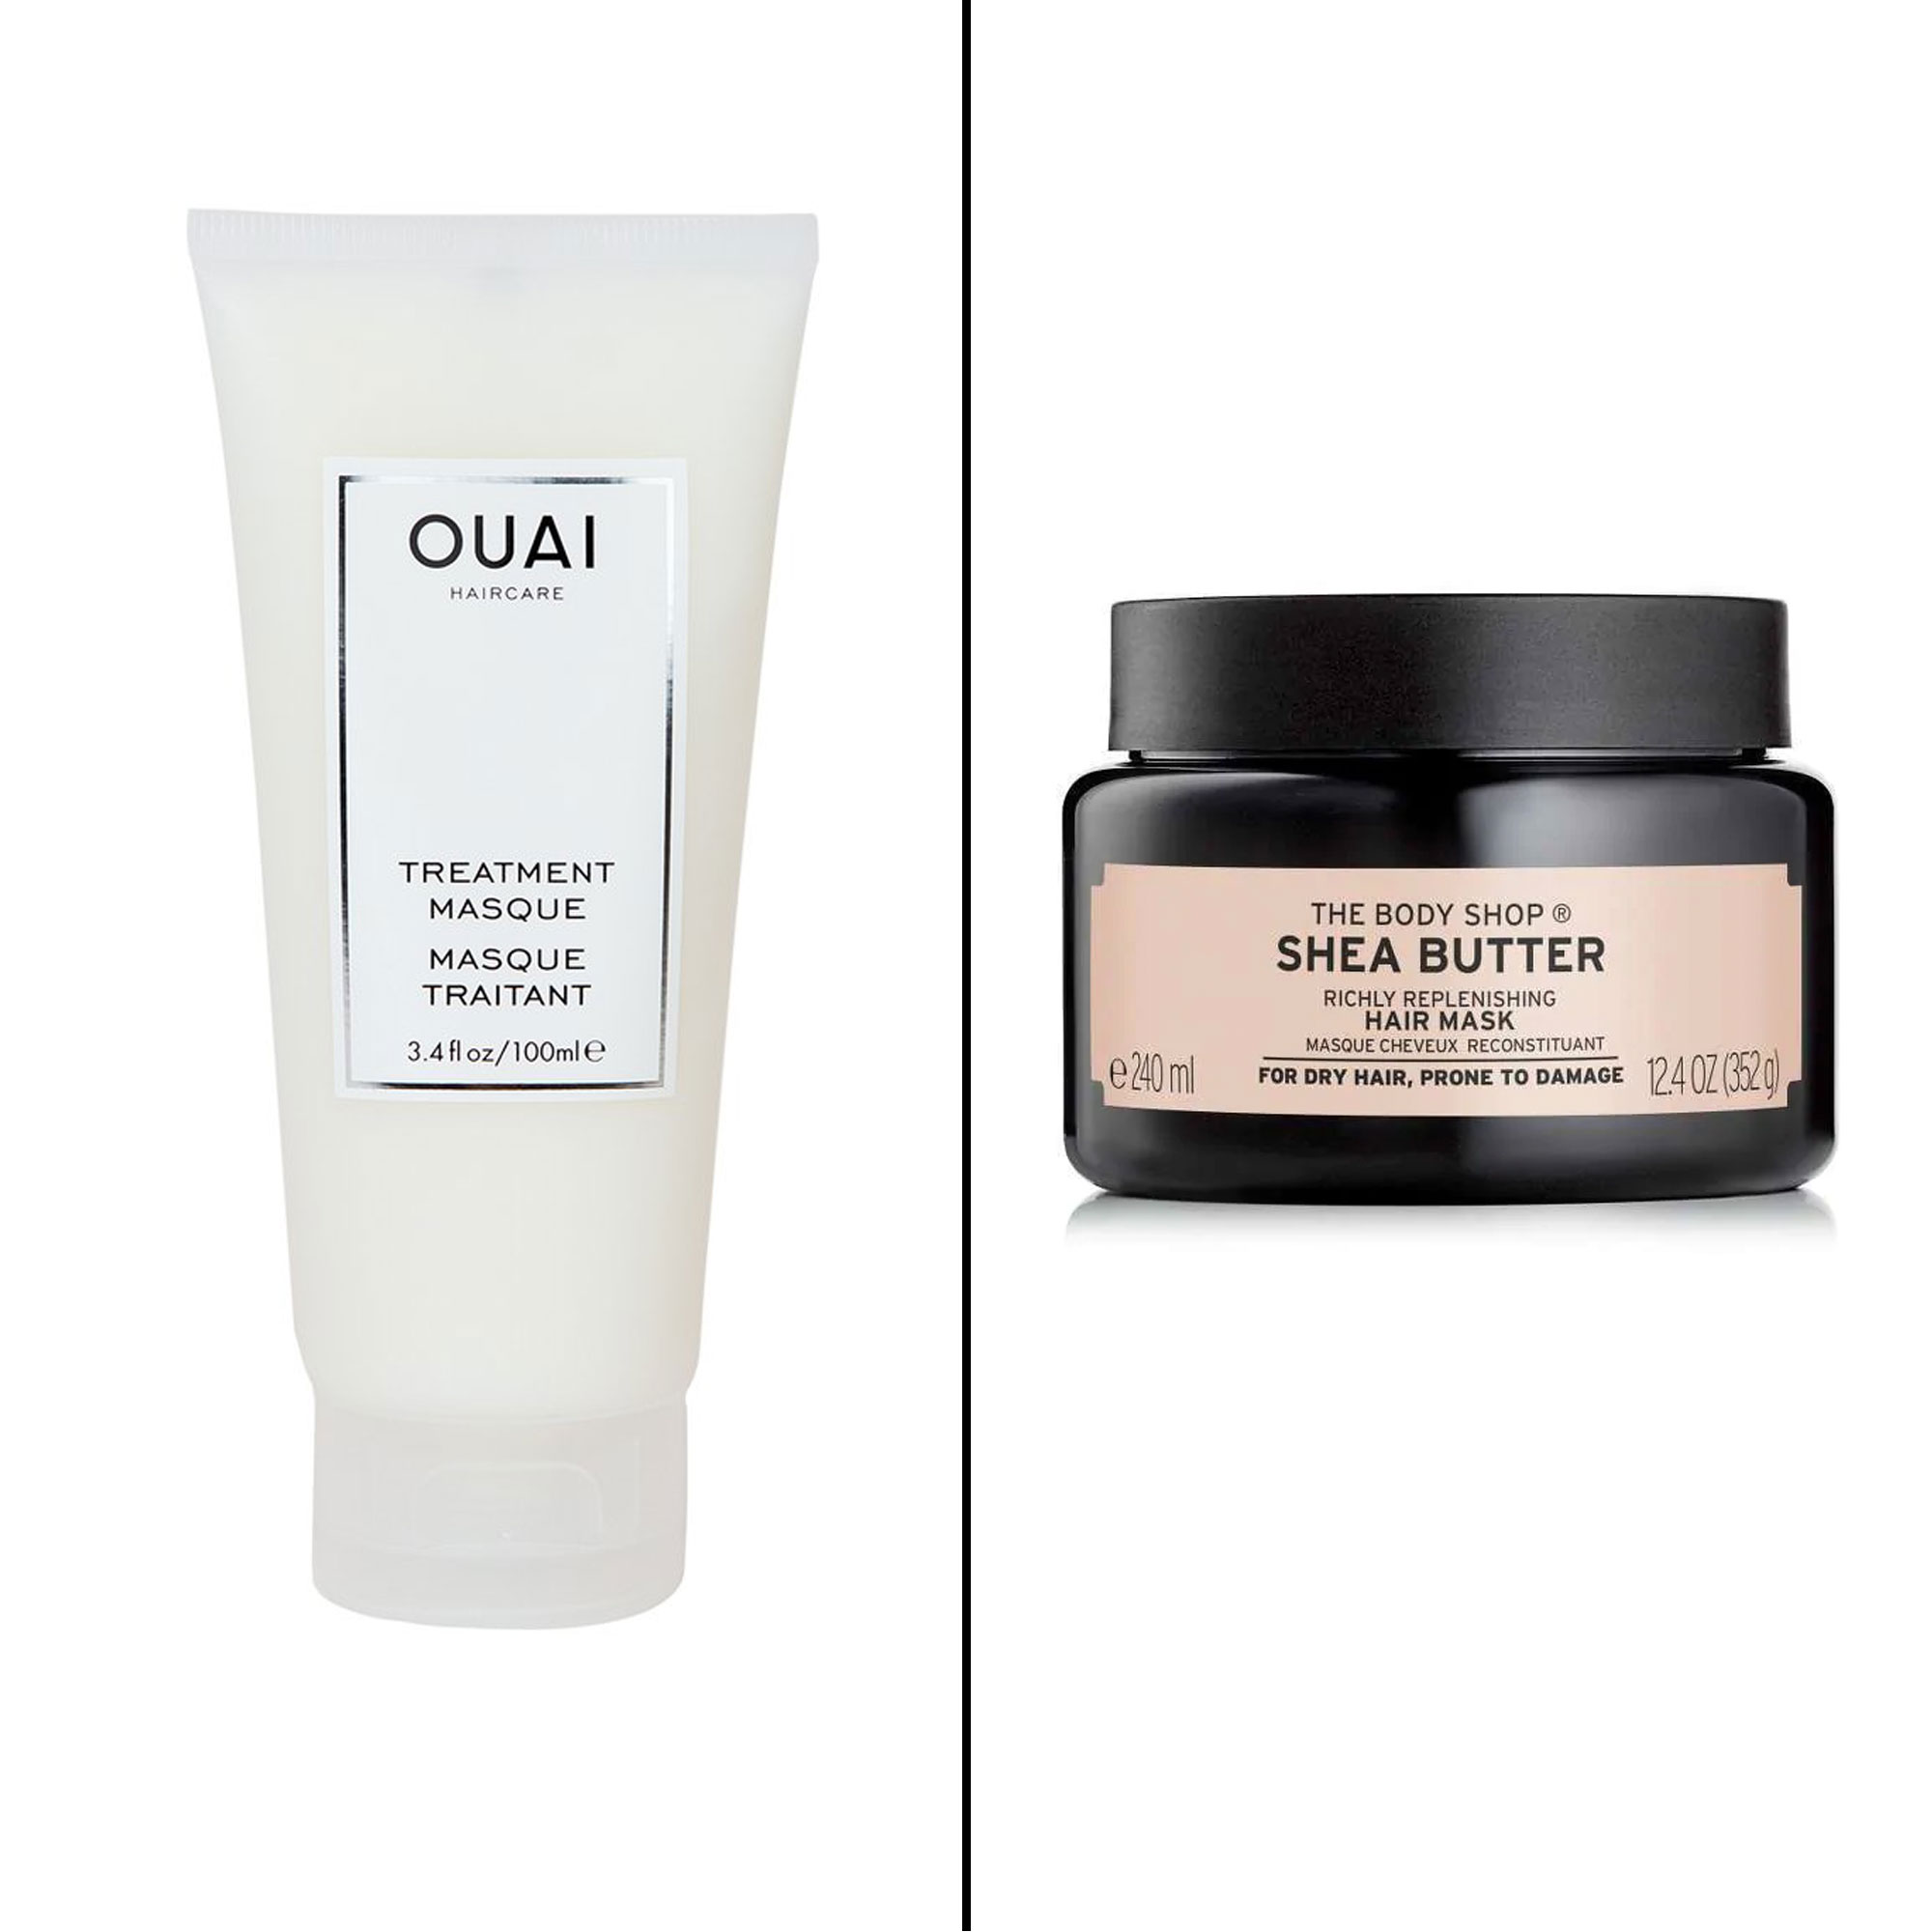 Splurge vs. Save: Salon-Worthy Hair Treatments For Every Type of Need - Splurge: Ouai Treatment Masque From Kardashian-favorite stylist Jen Atkin's brand, this moisturizing mask softens and repairs hair by sealing the cuticle to protect against split ends and other damages. $32, sephora.com Save: The Body Shop Shea Butter Richly Replenishing Hair Mask For intense hydration, try this budget-friendly mask which is completely vegan and ethically-sourced.